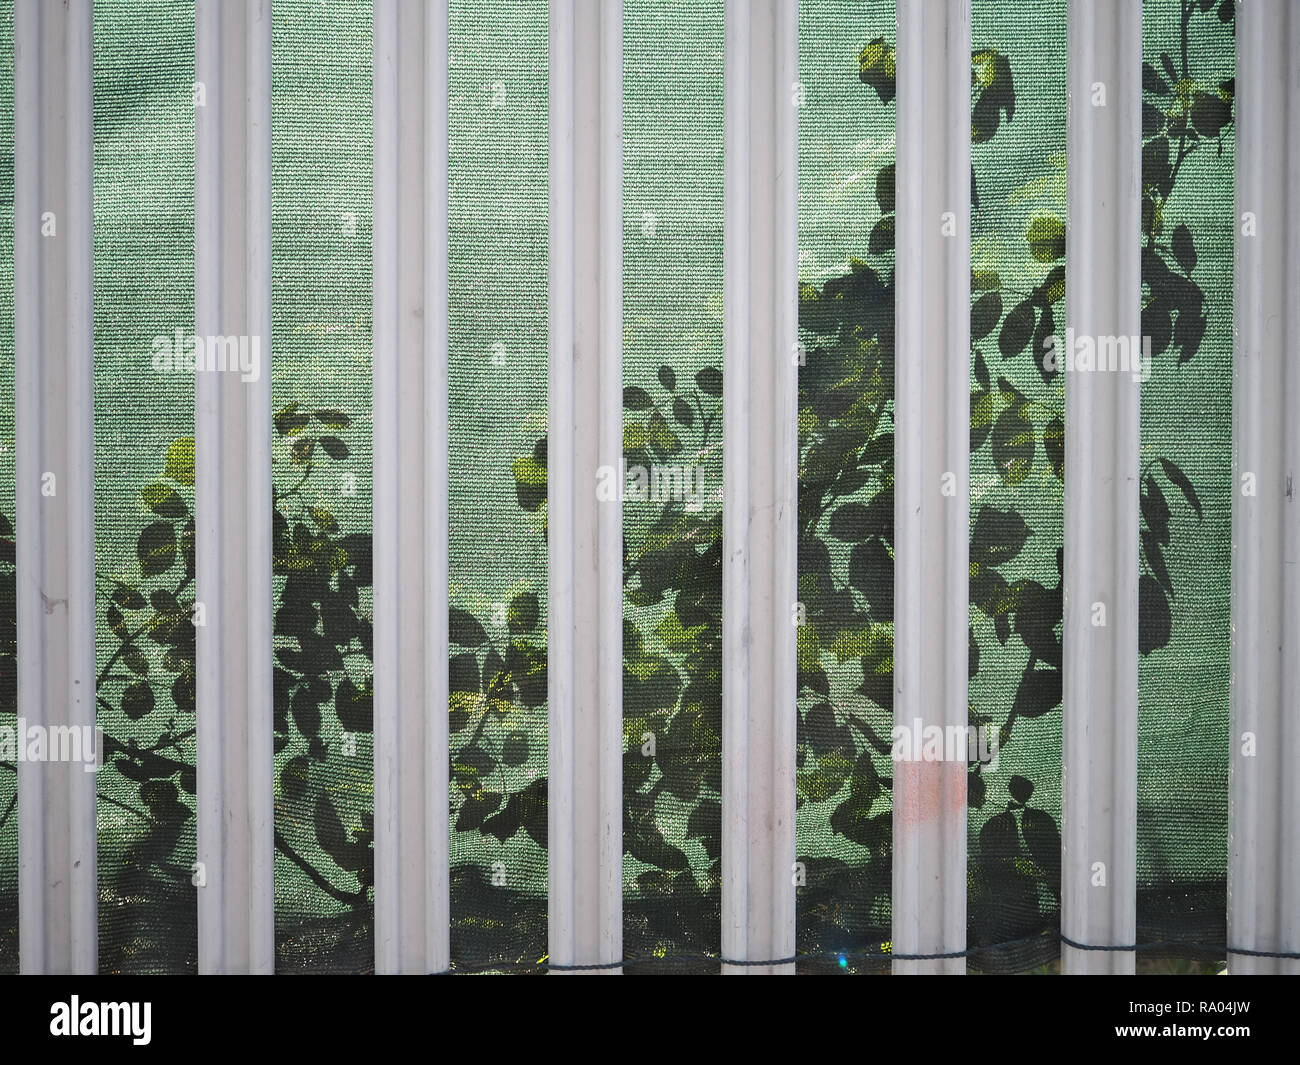 Leaves in shadow behind a metal fence - Stock Image